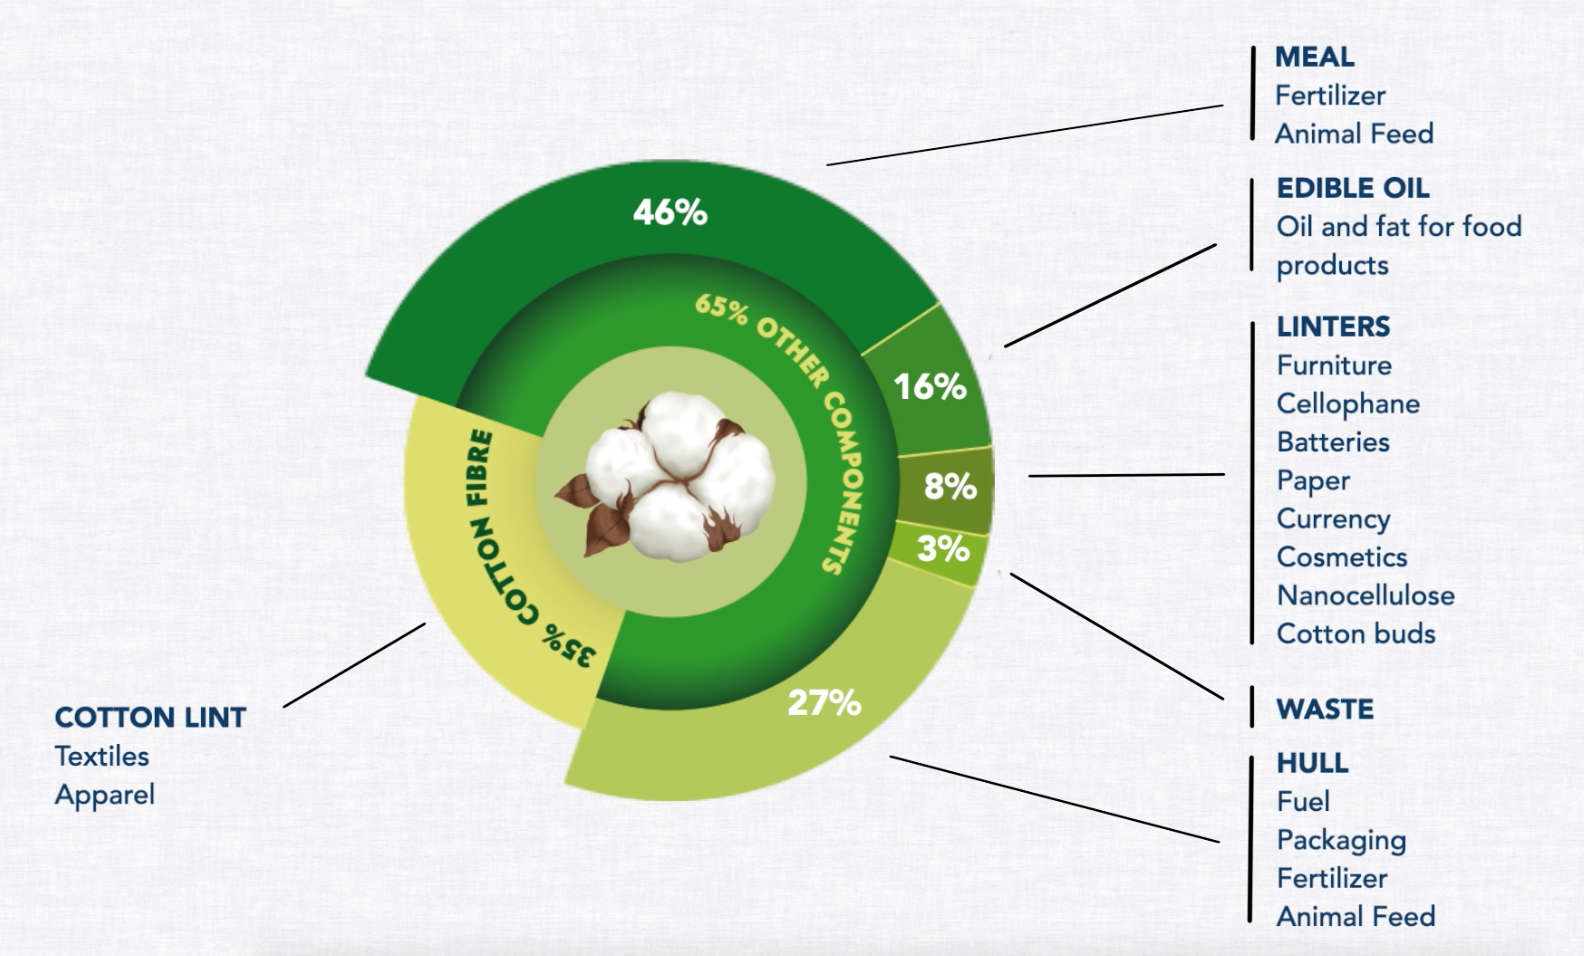 Most people only think of the fibre when they think of cotton, but 100% of the cotton plant has practical uses that improve our lives and generate additional revenue for growers.